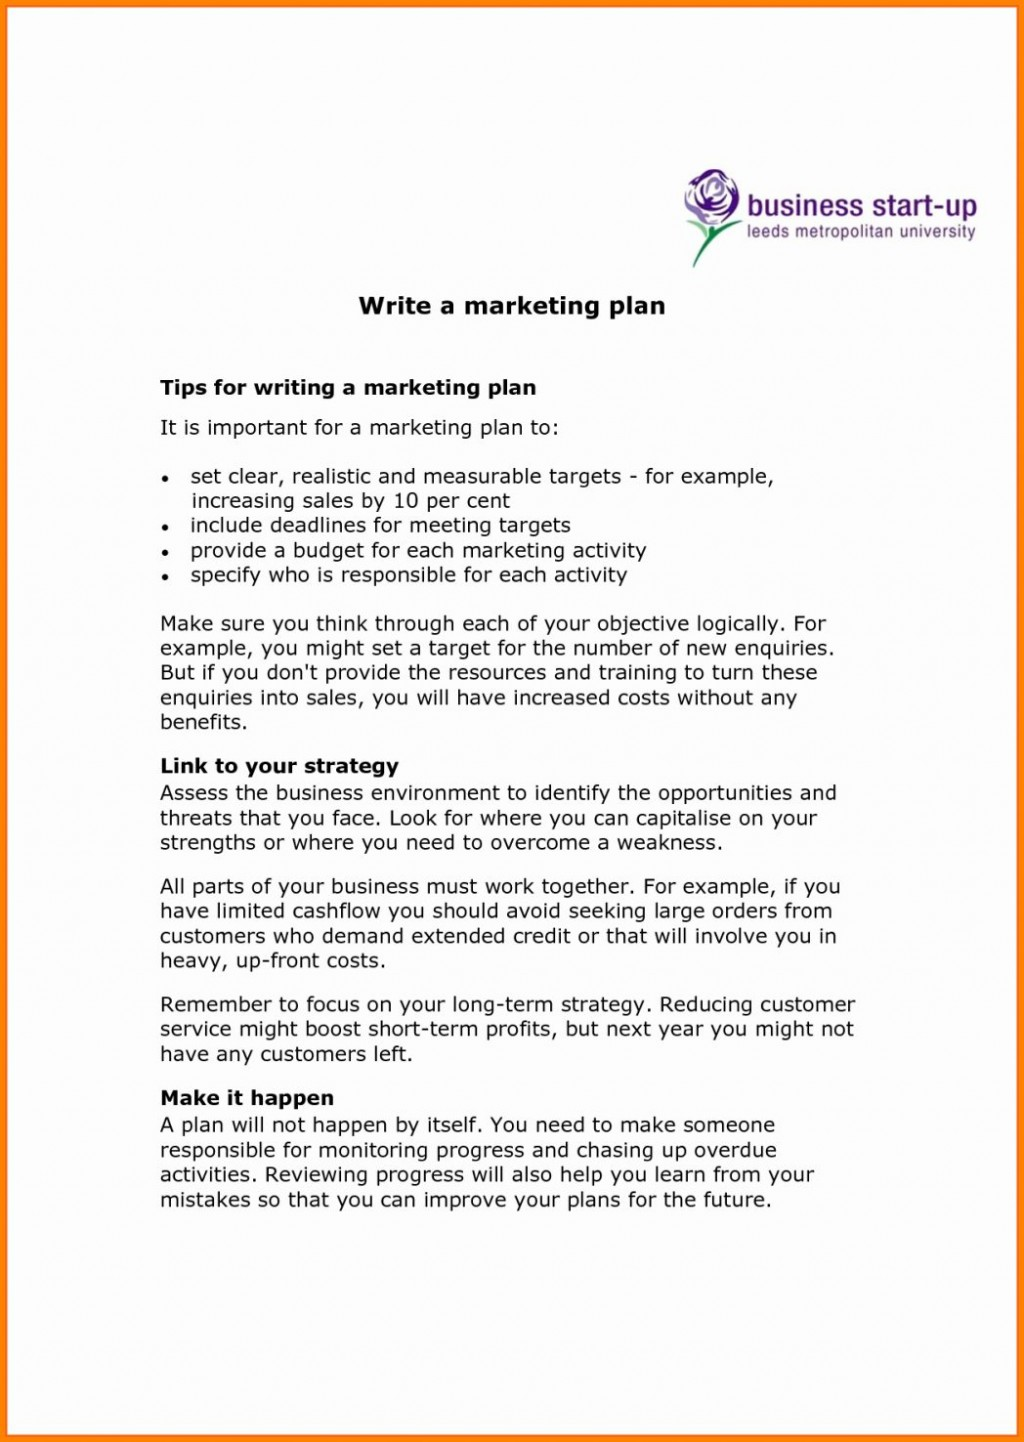 022 Research Paper Parts Of And Its Definition Pdf Marketing Plan Example Business Genxeg Quizlet Sample Proposal Bestf Real Estate Bussines Small Company Sba Executive Staggering A Large